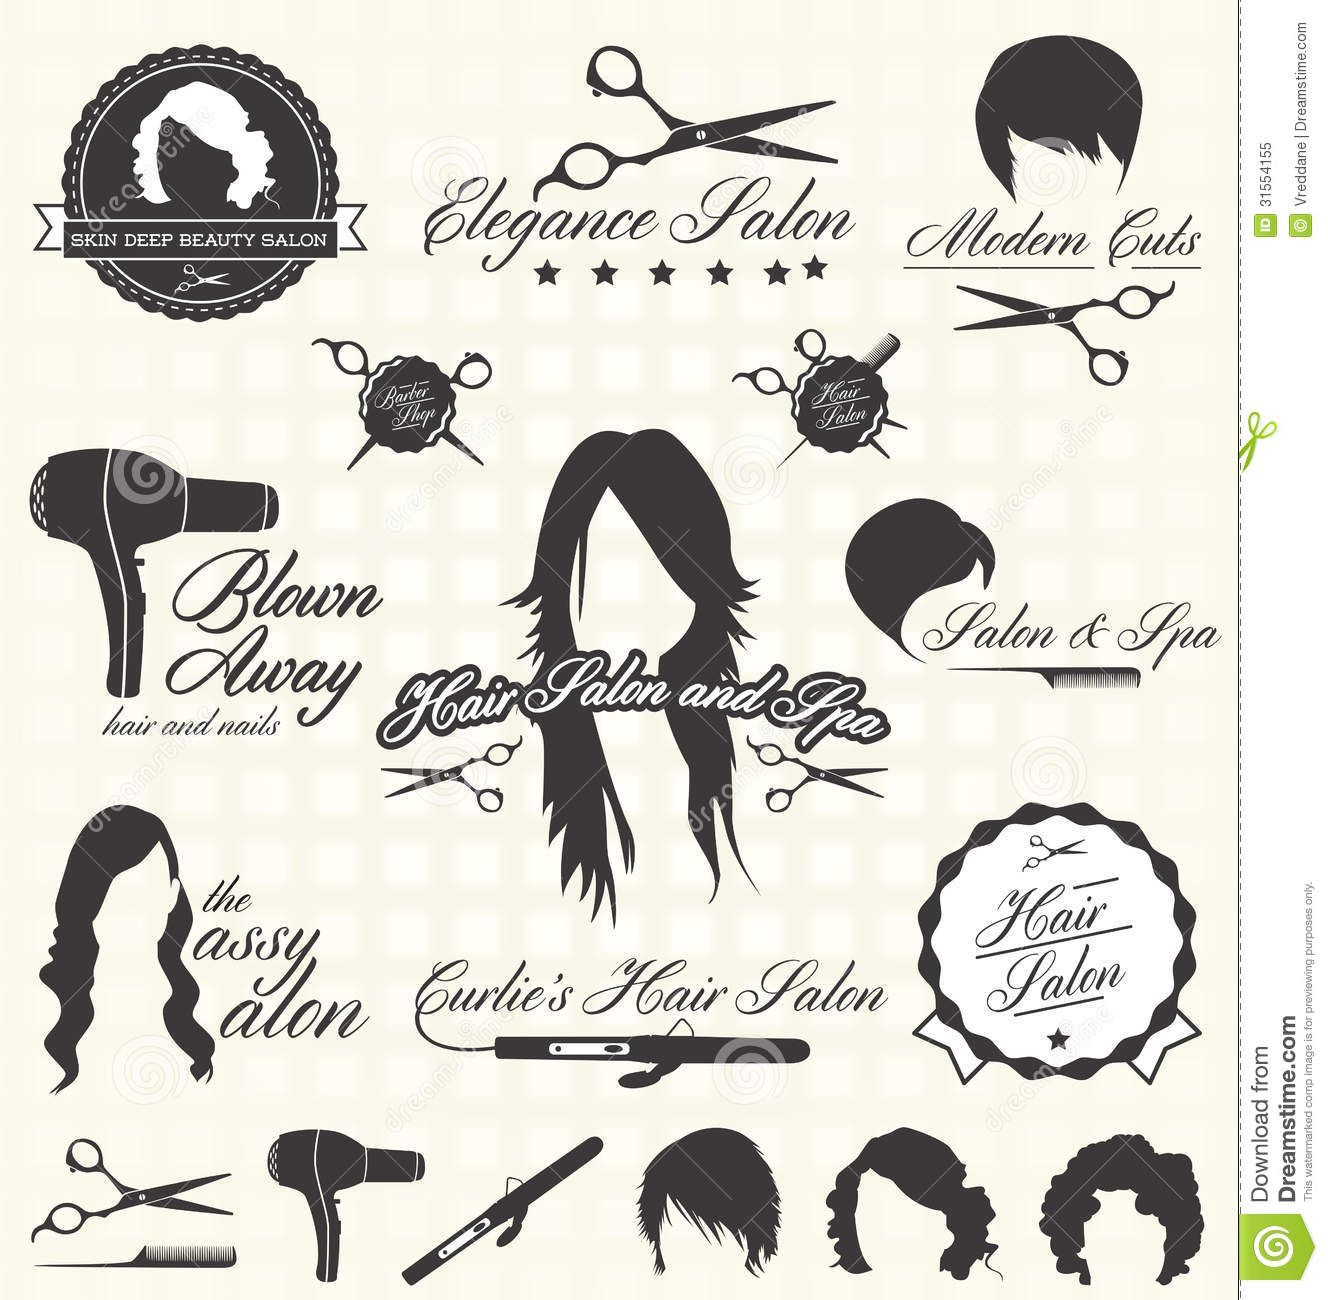 Hairdresser graphics google search graphic design for 1950 s beauty salon